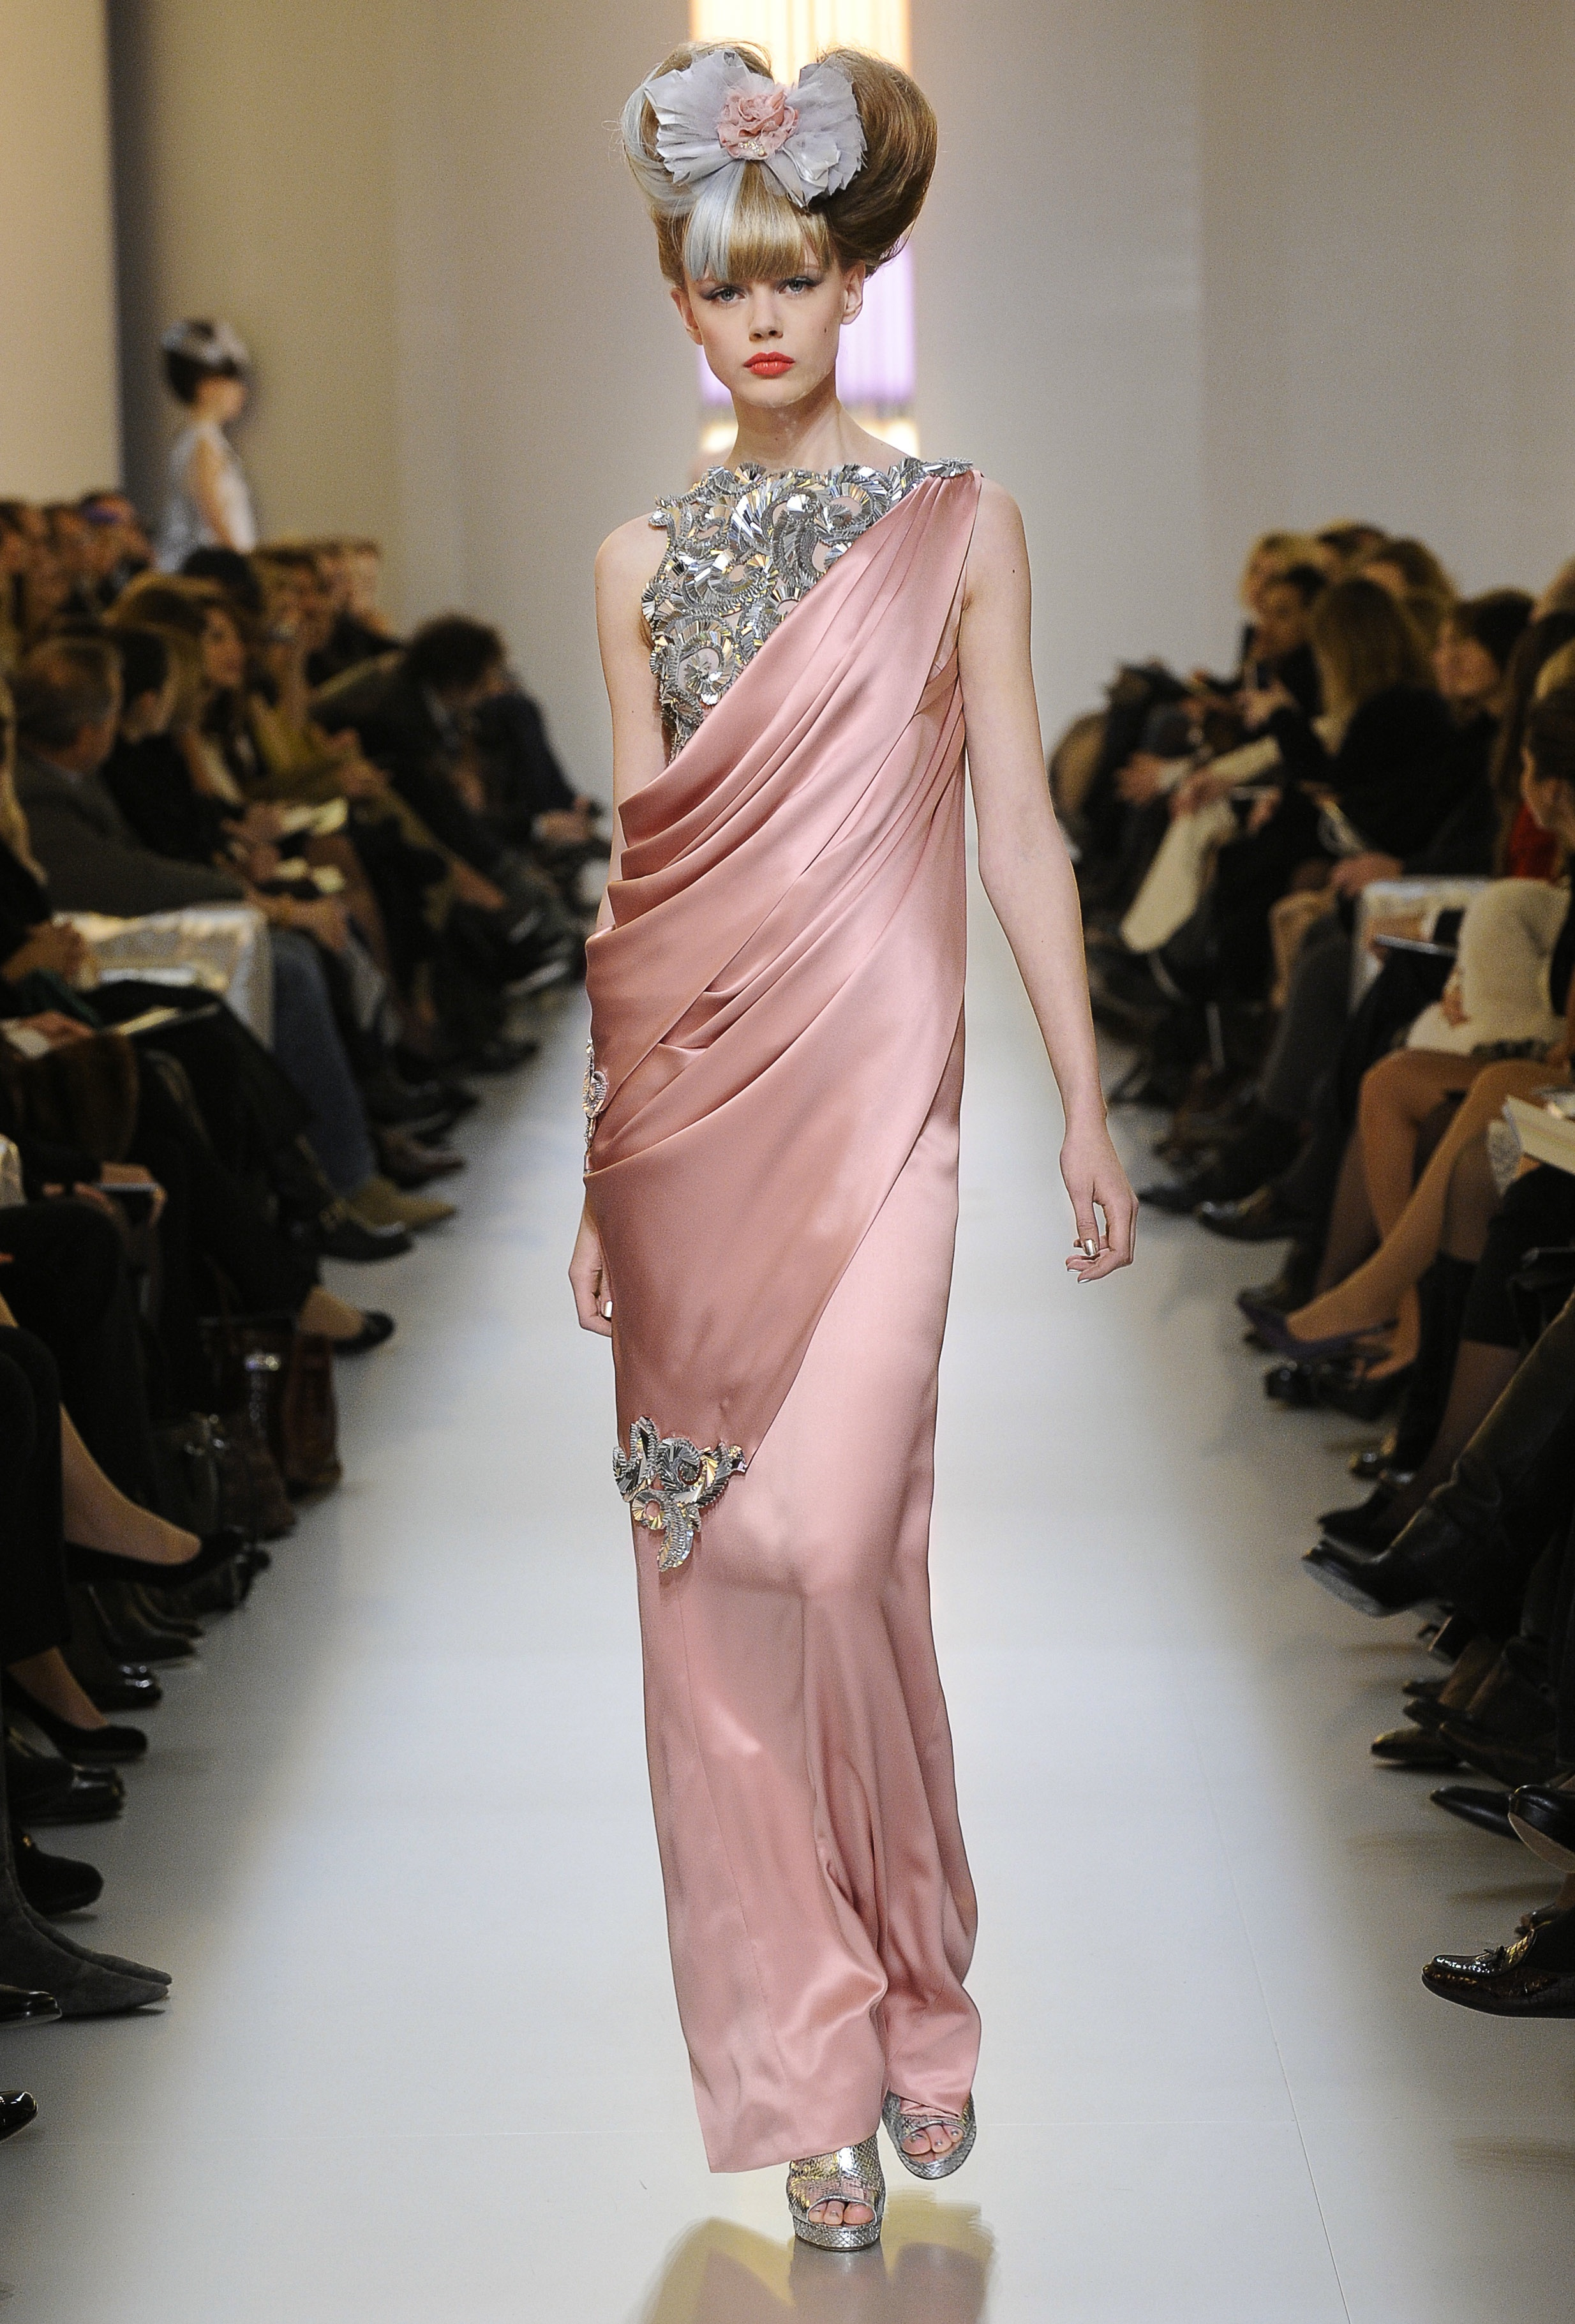 Womens evening wear haute couture fashion detailed info for